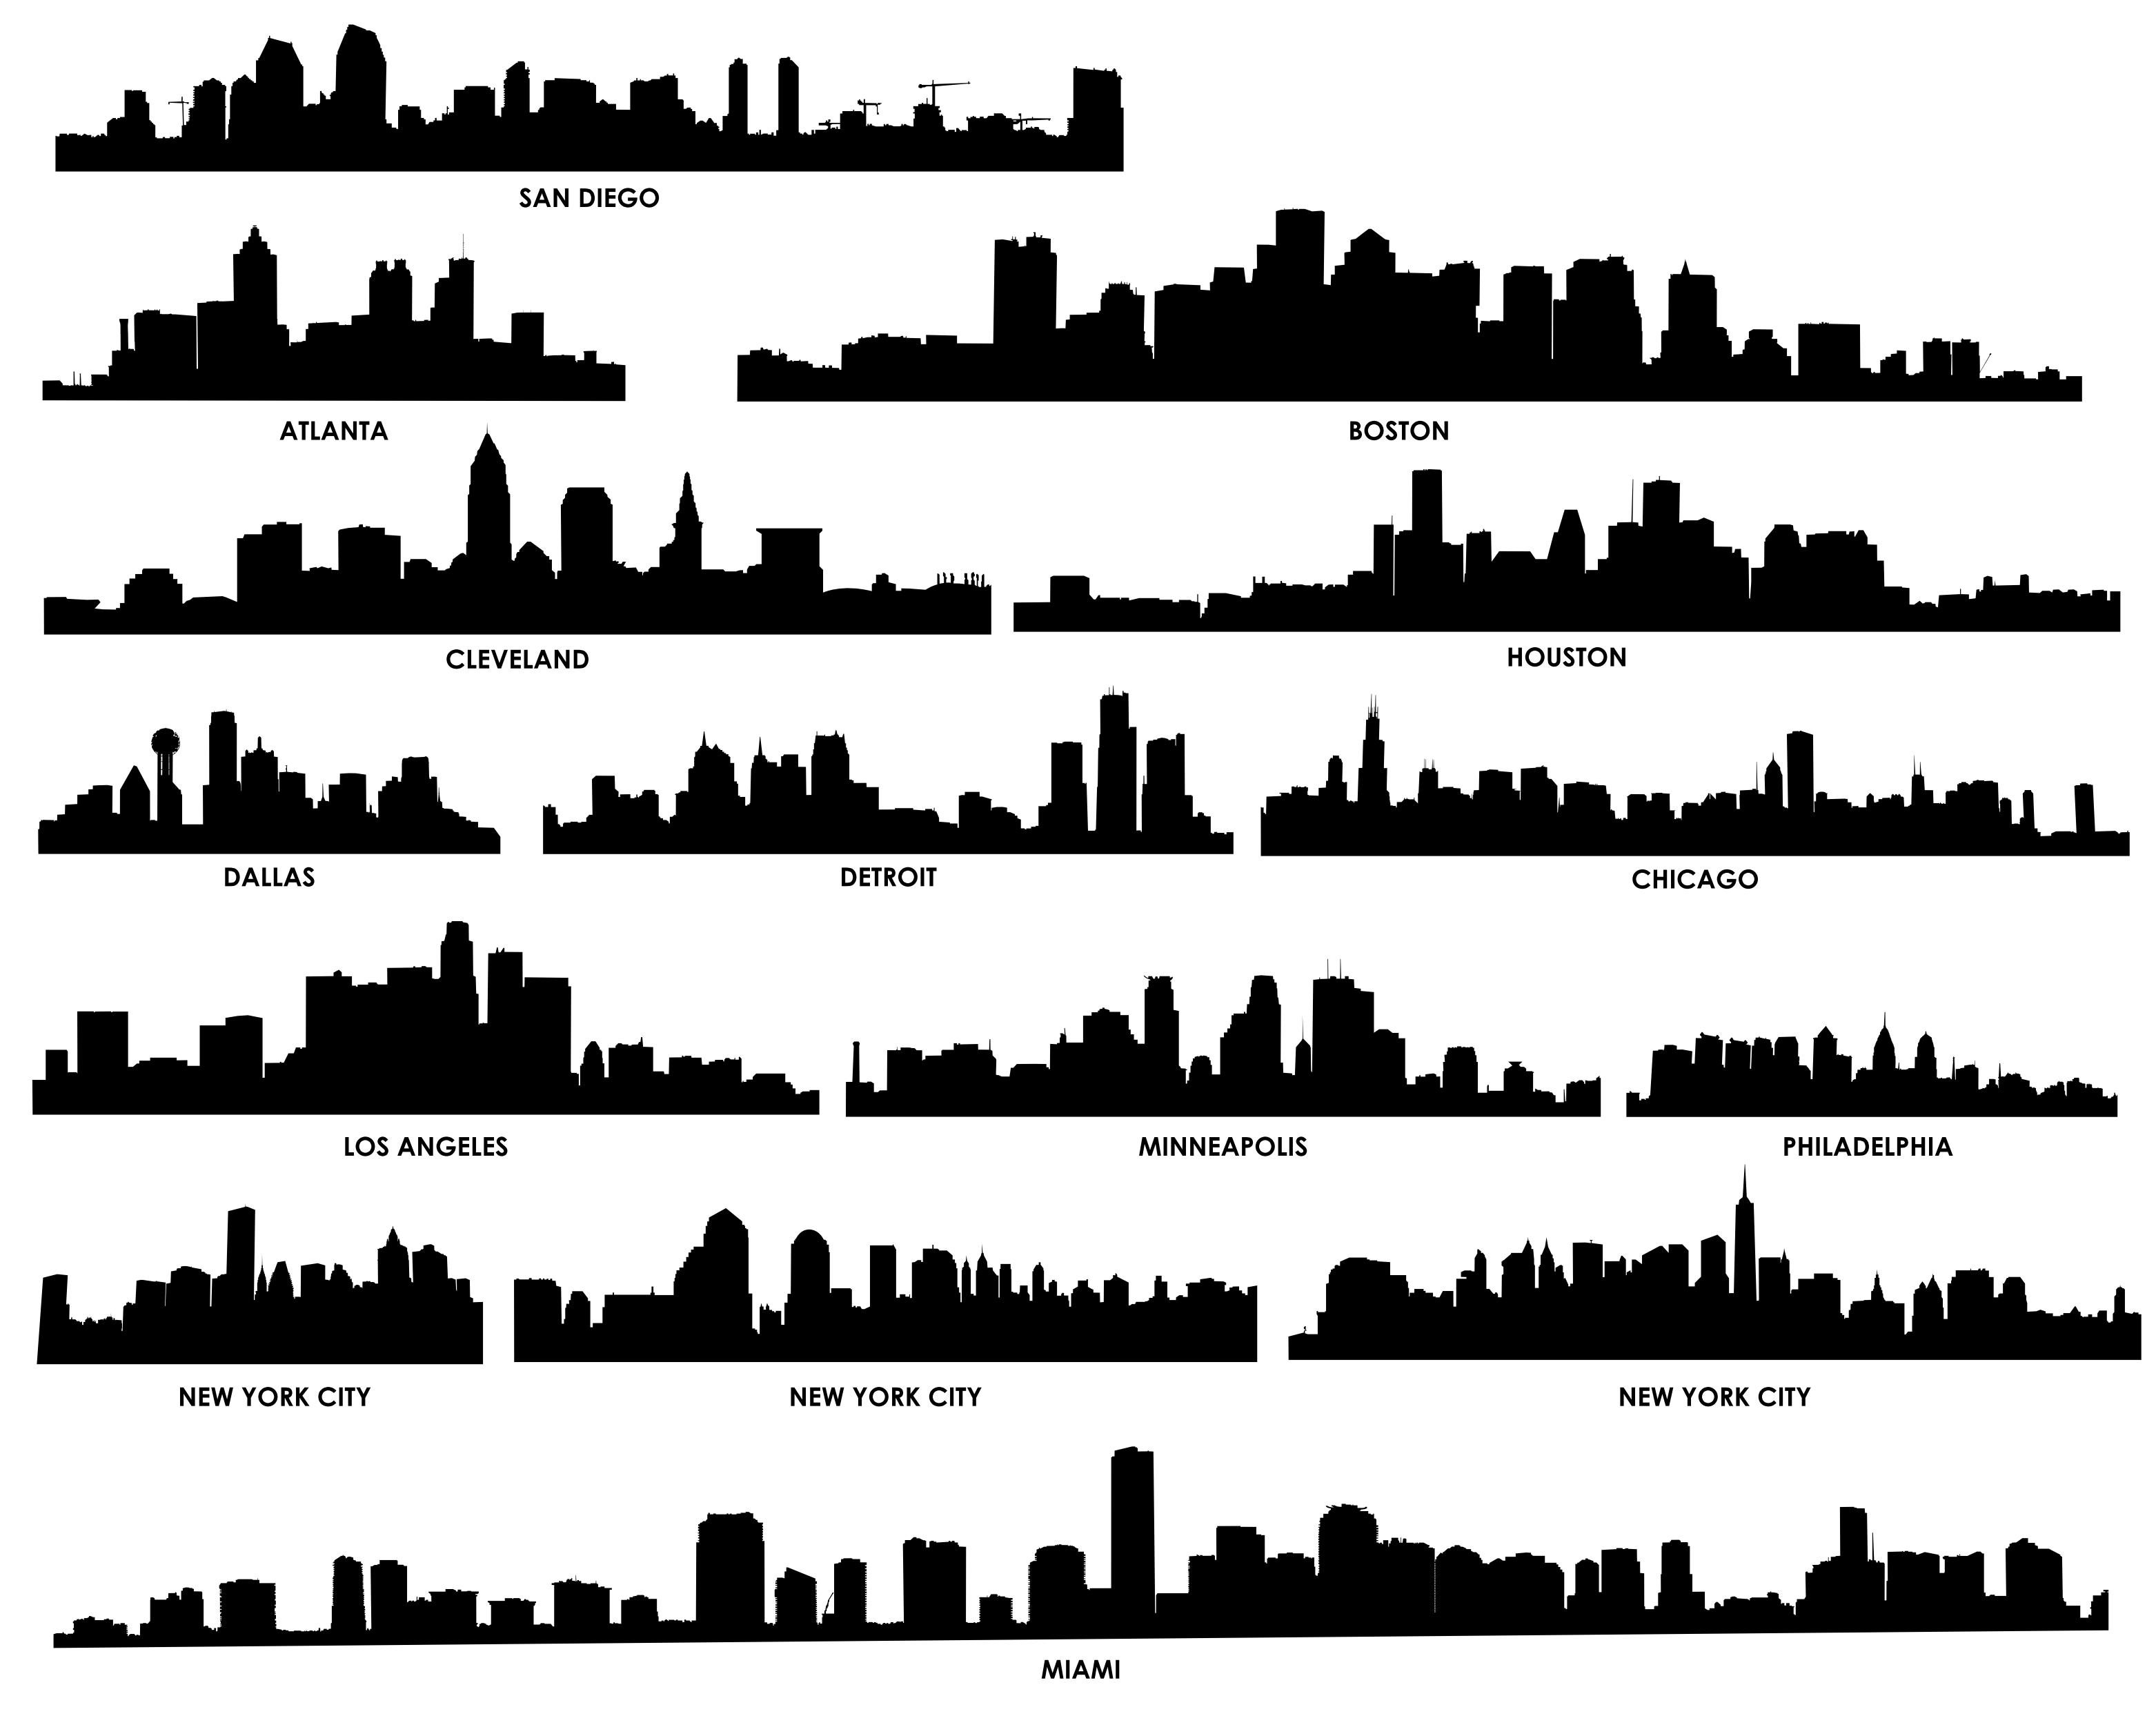 Free hd vector images of detroit skyline clipart picture library Free Atlanta Skyline Vector, Download Free Clip Art, Free Clip Art ... picture library